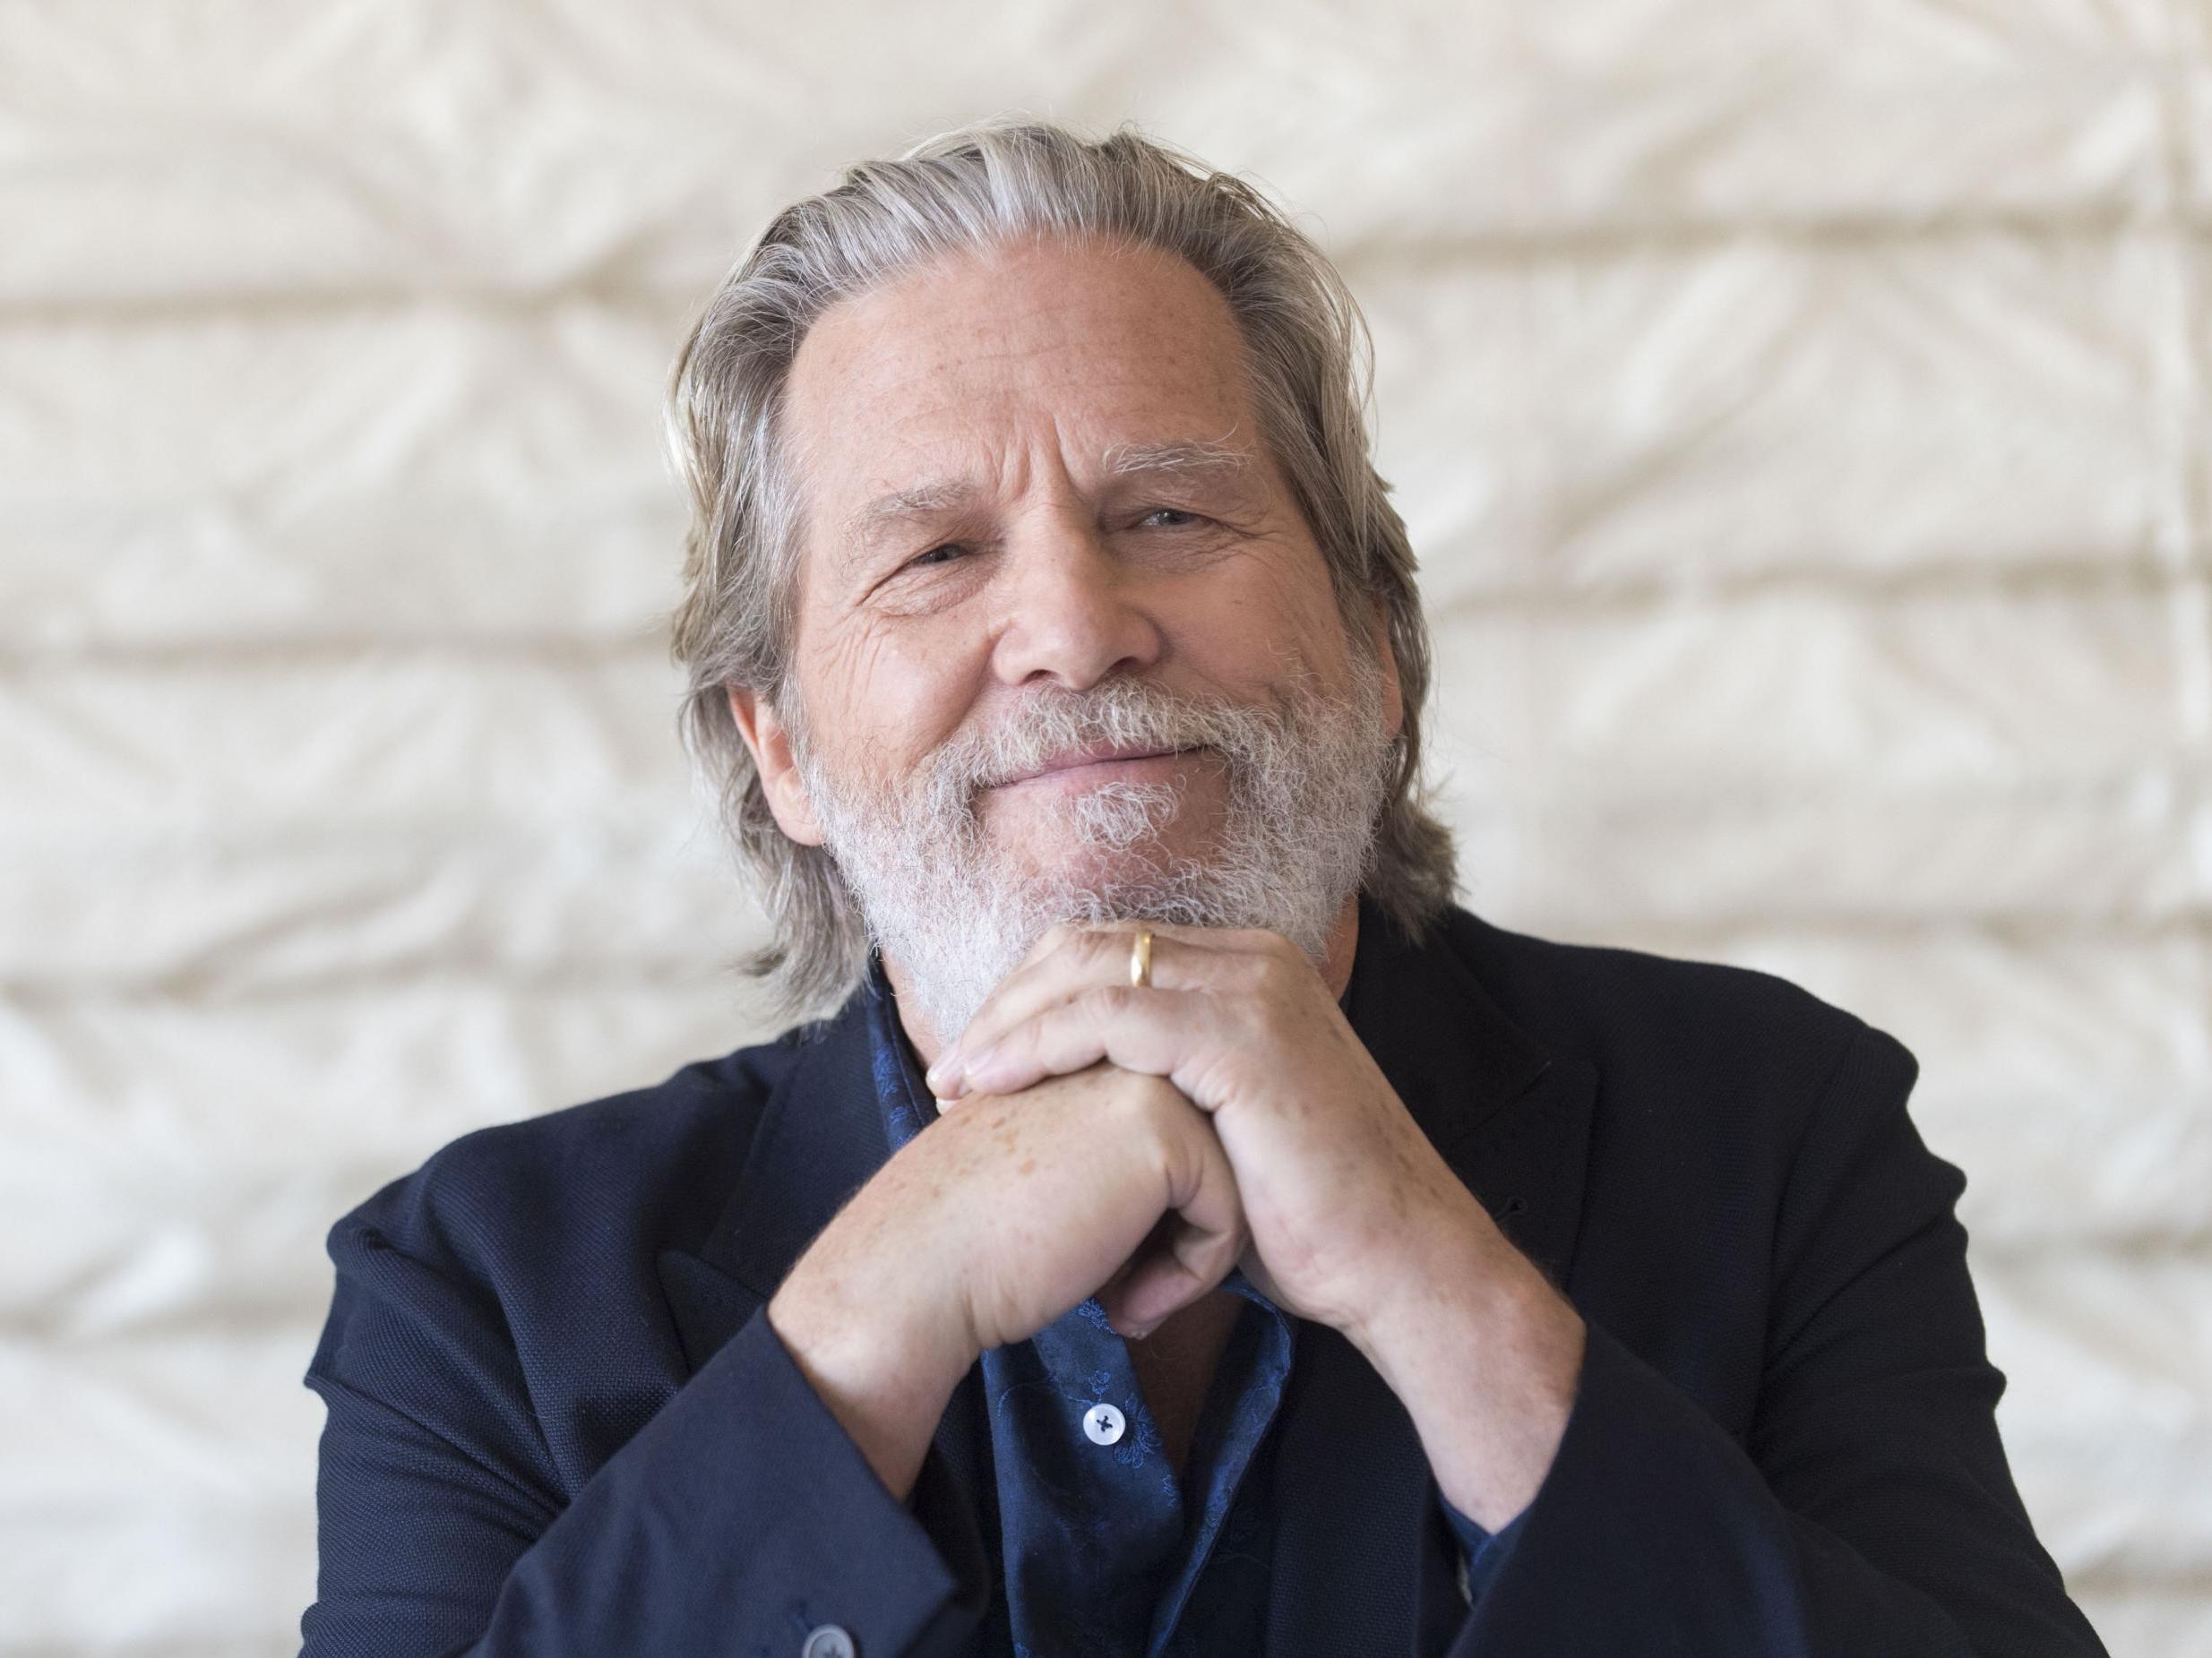 Jeff Bridges Interview Trumps Inspired Me To Take Action The